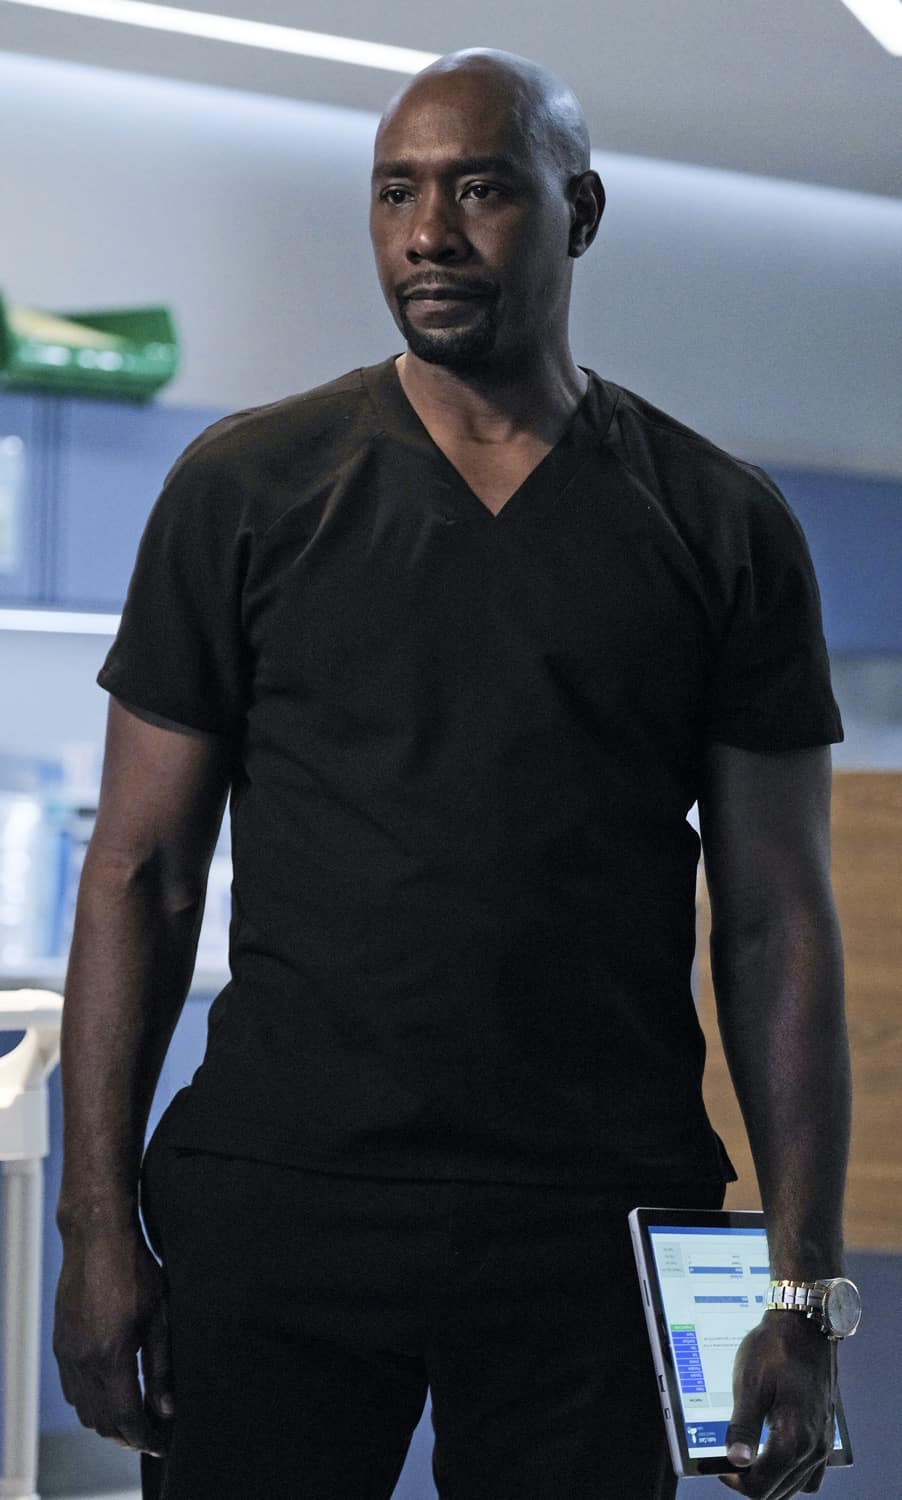 """THE RESIDENT Season 4 Episode 14 : Morris Chestnut in the season finale """"Past Present Future"""" episode of THE RESIDENT airing Tuesday, May 18 (8:00-9:01 PM ET/PT) on FOX. ©2021 Fox Media LLC Cr: Guy D'Alema/FOX"""